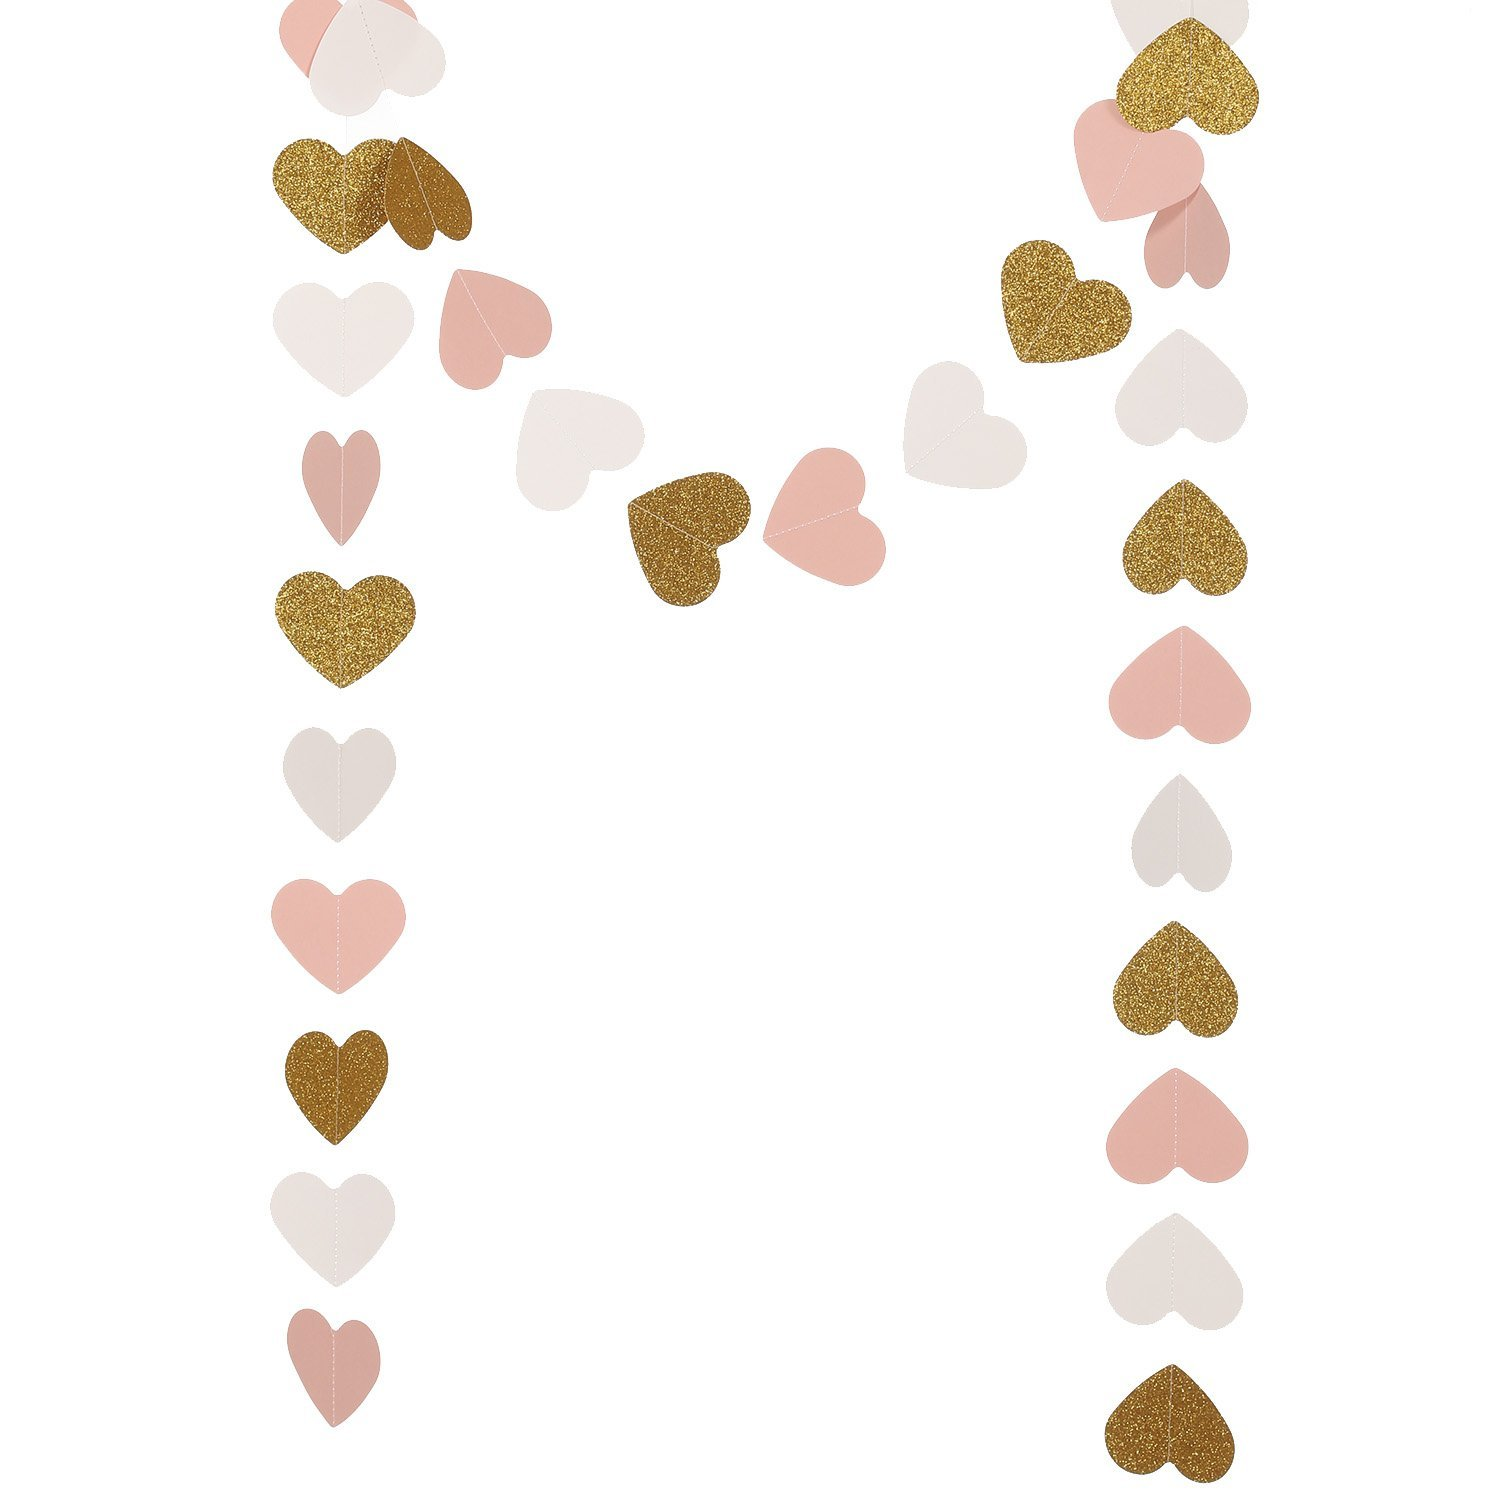 Ling's moment 9 Feet Paper Heart Garland, Glitter Paper Garland, Heart Hanging Decorations for Wedding, Baby Shower, Christmas Items & Party Props (Gold Glitter+Pink+White)